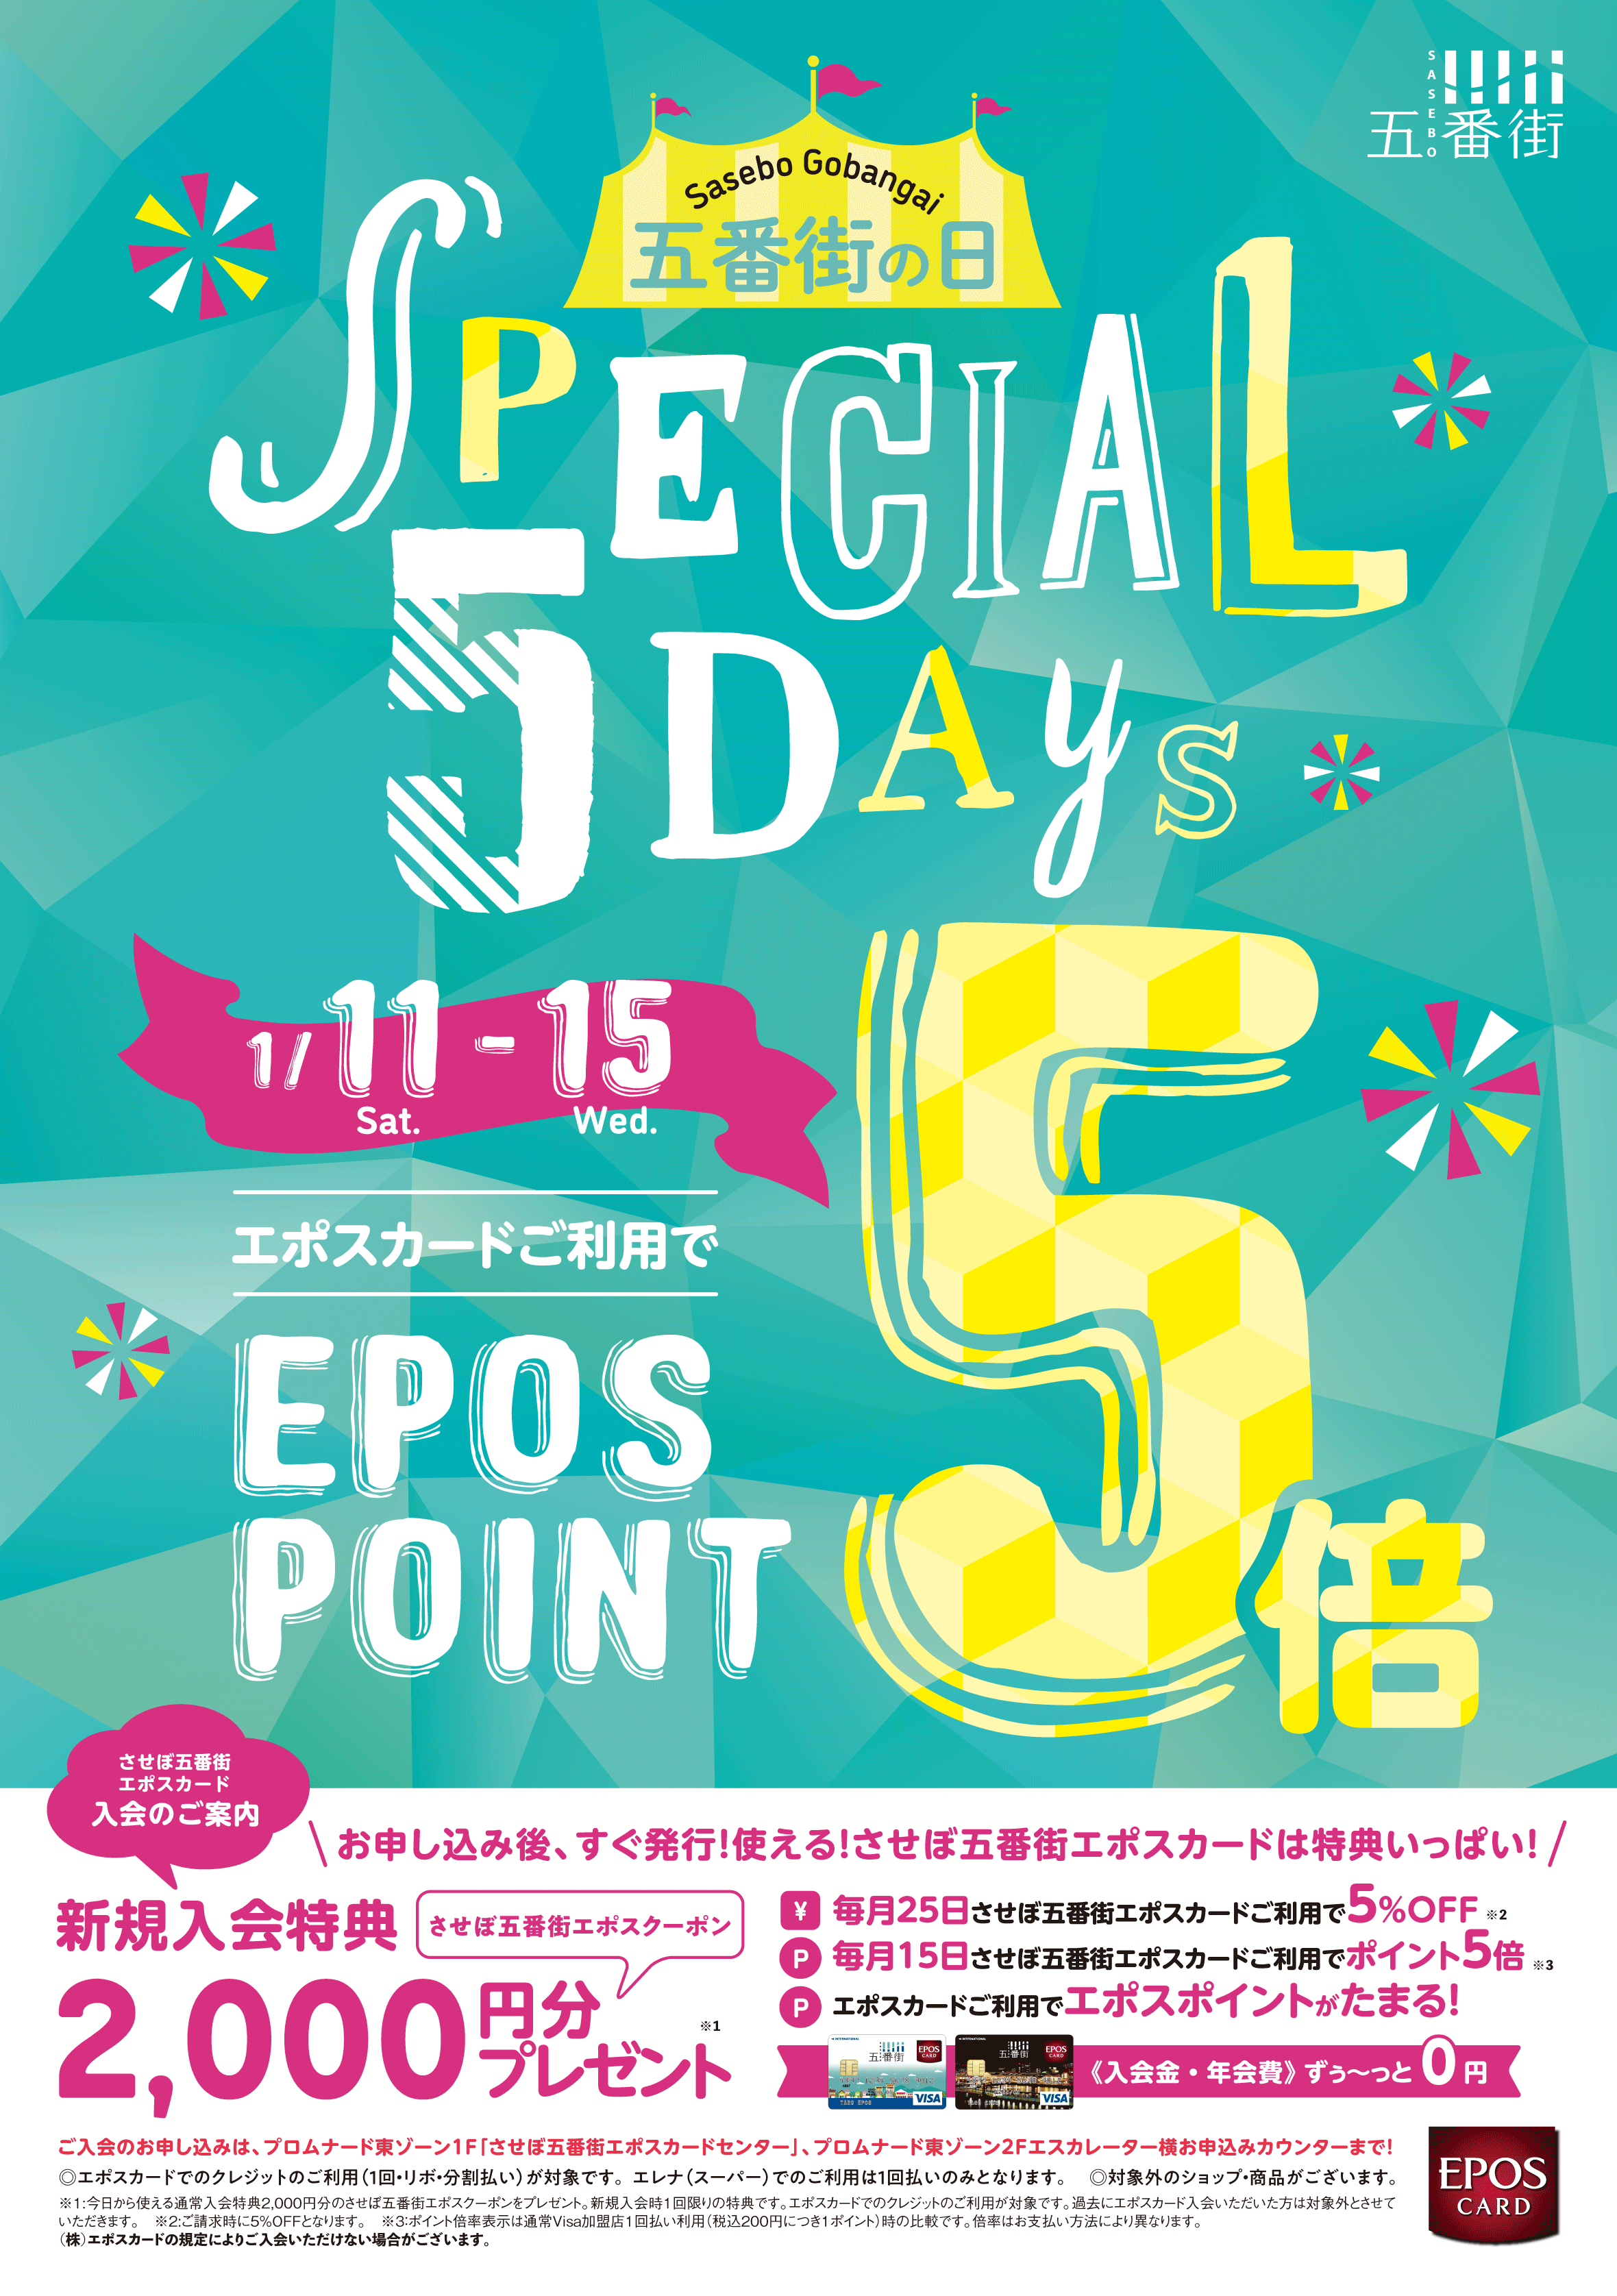 Special 5Days 五番街の日